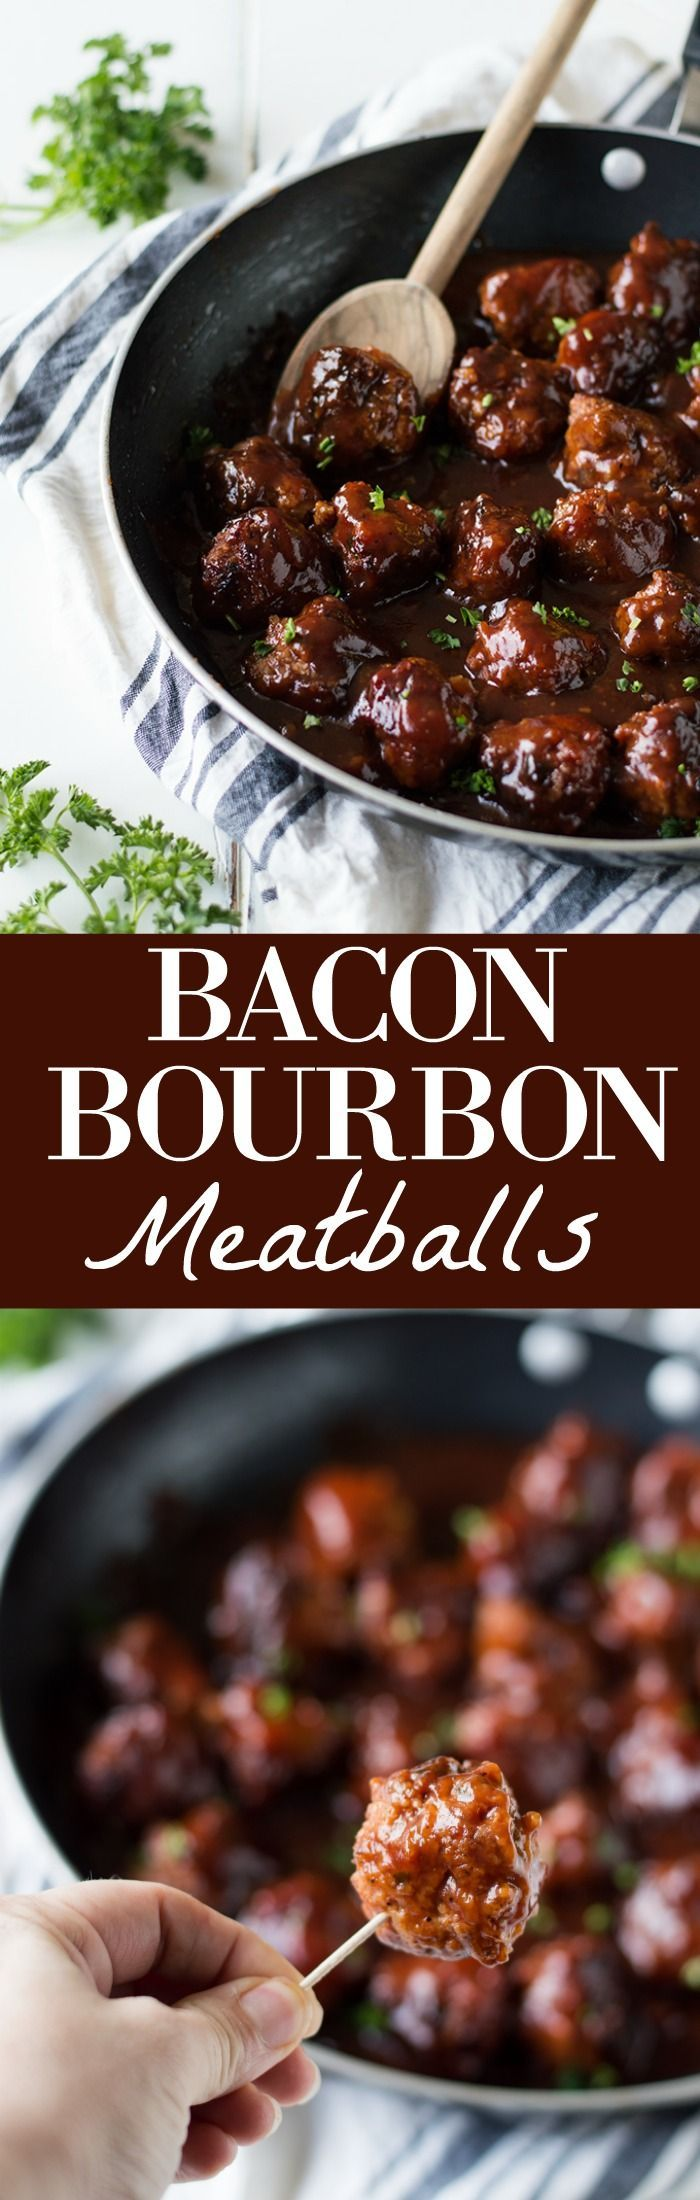 Bacon Bourbon Meatballs! These meatballs are made with bacon and ground beef and simmered in a bourbon bbq sauce. Perfect to serve as an appetizer for the big game or on a sandwich for family dinner!